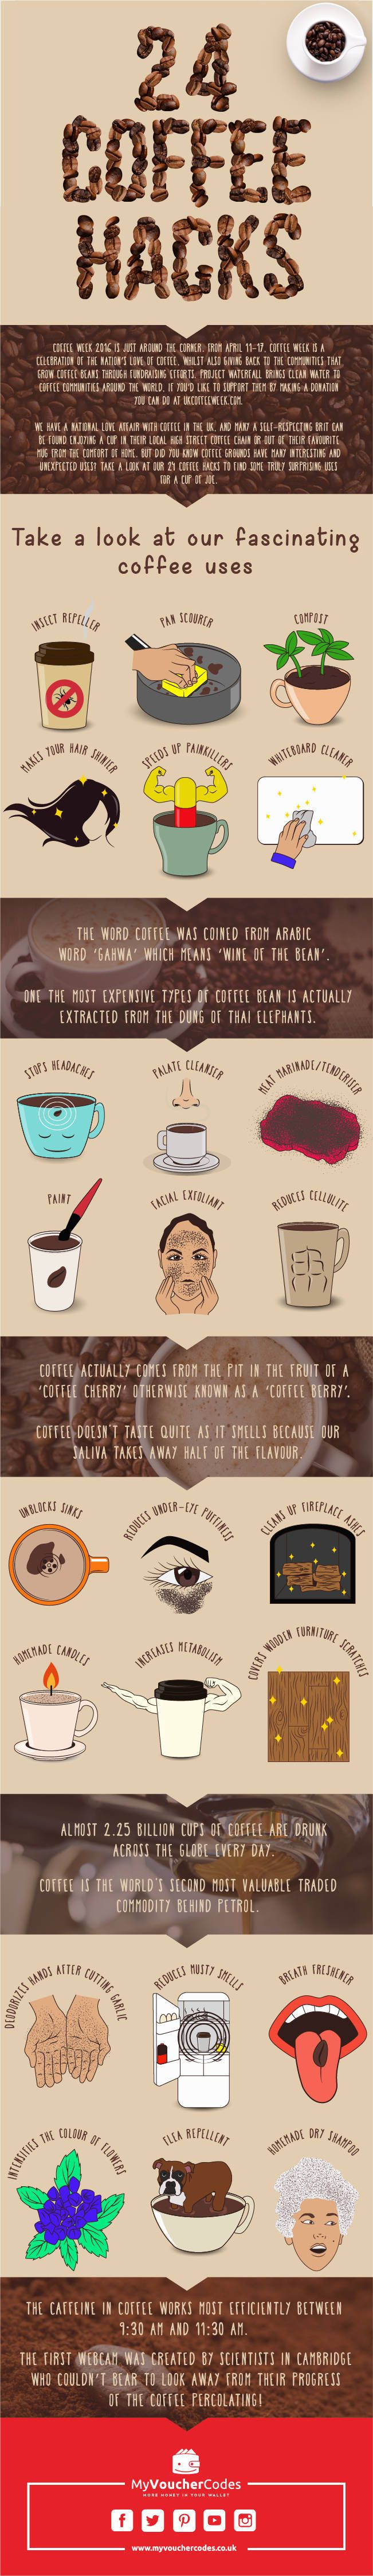 24 Unexpected Ways to Use Coffee: Amazing Hacks for Your Home, Health, and Beauty